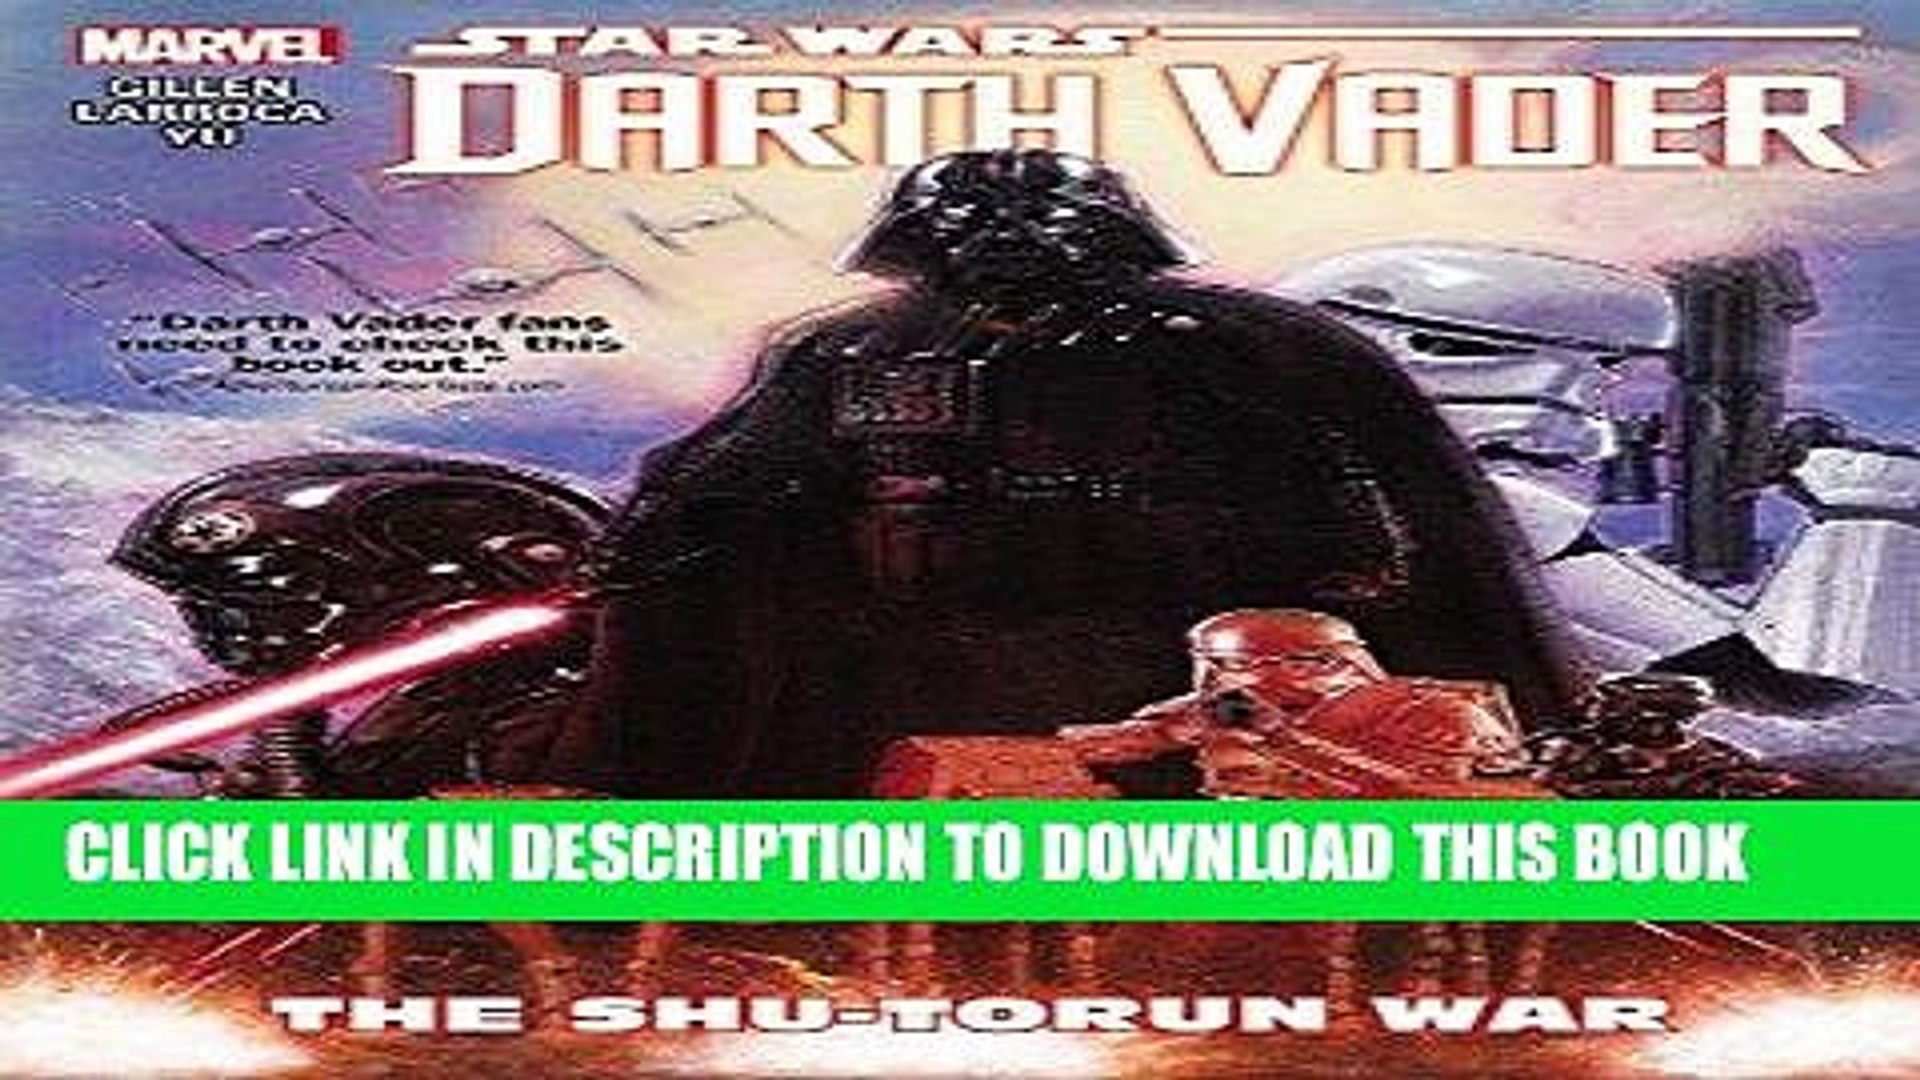 Best Seller Star Wars: Darth Vader Vol. 3: The Shu-Torun War (Star Wars (Marvel)) Free Read